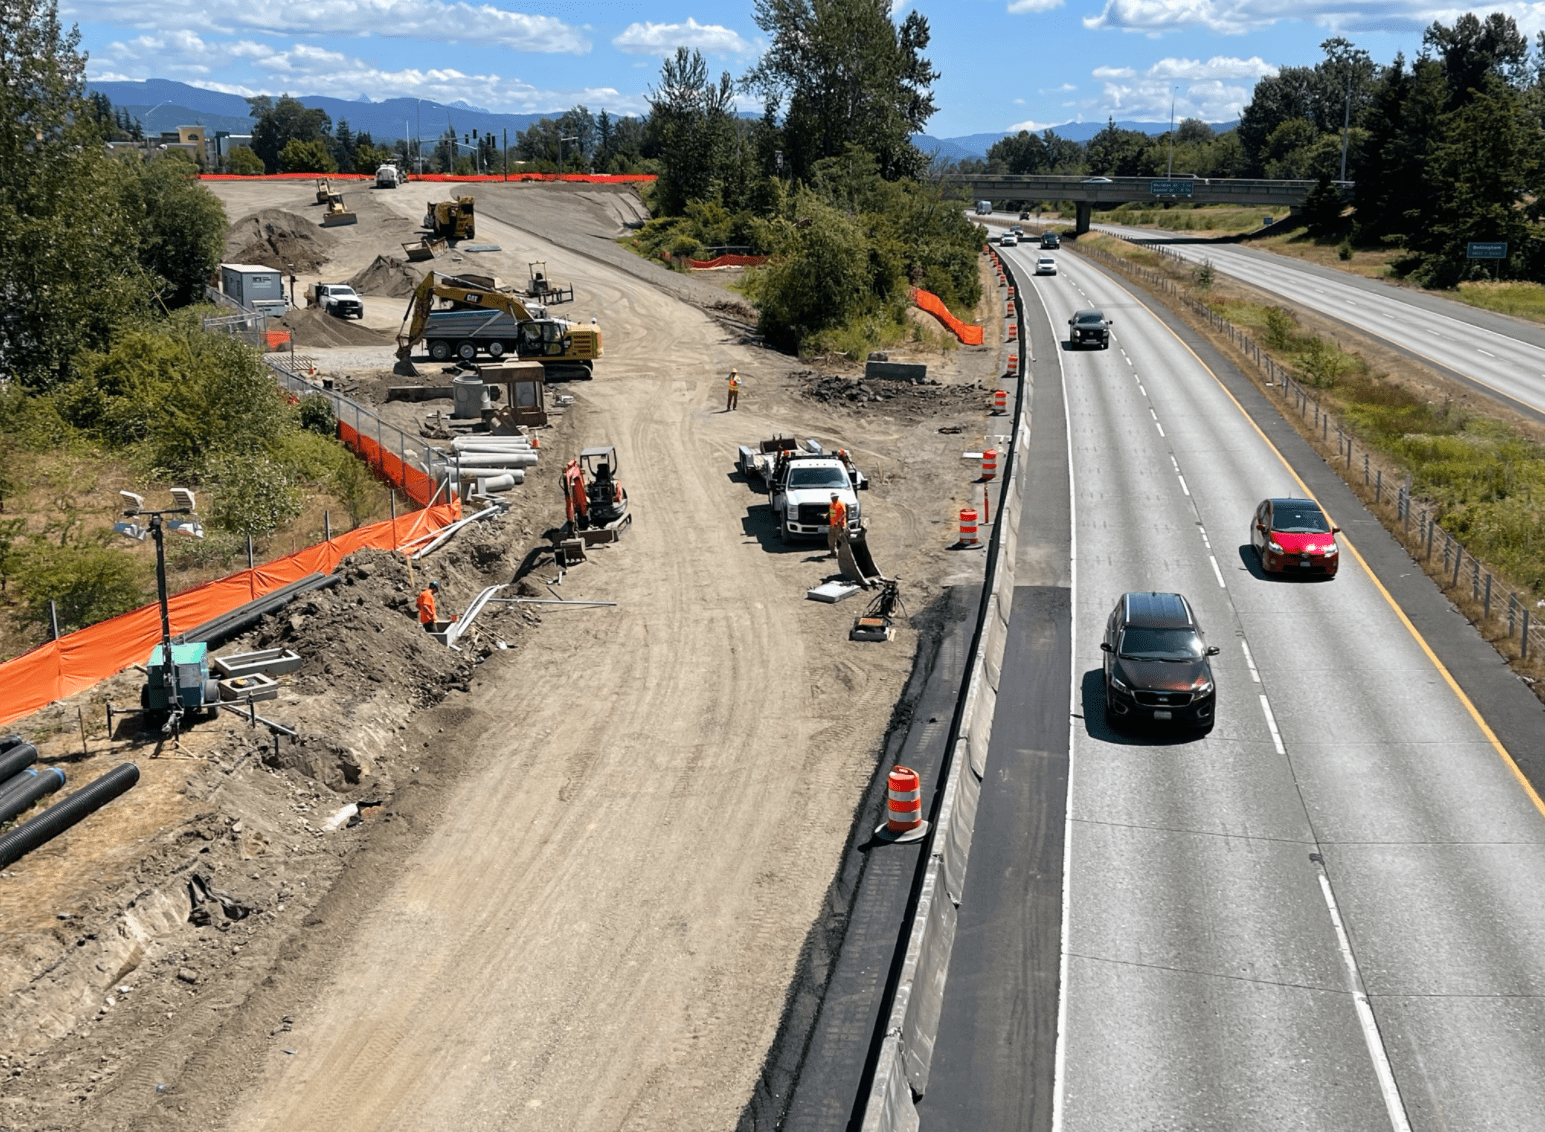 Construction of a 2nd on-ramp at the W Bakerview Road I-5 interchange (August 10, 2021). Photo courtesy of WSDOT